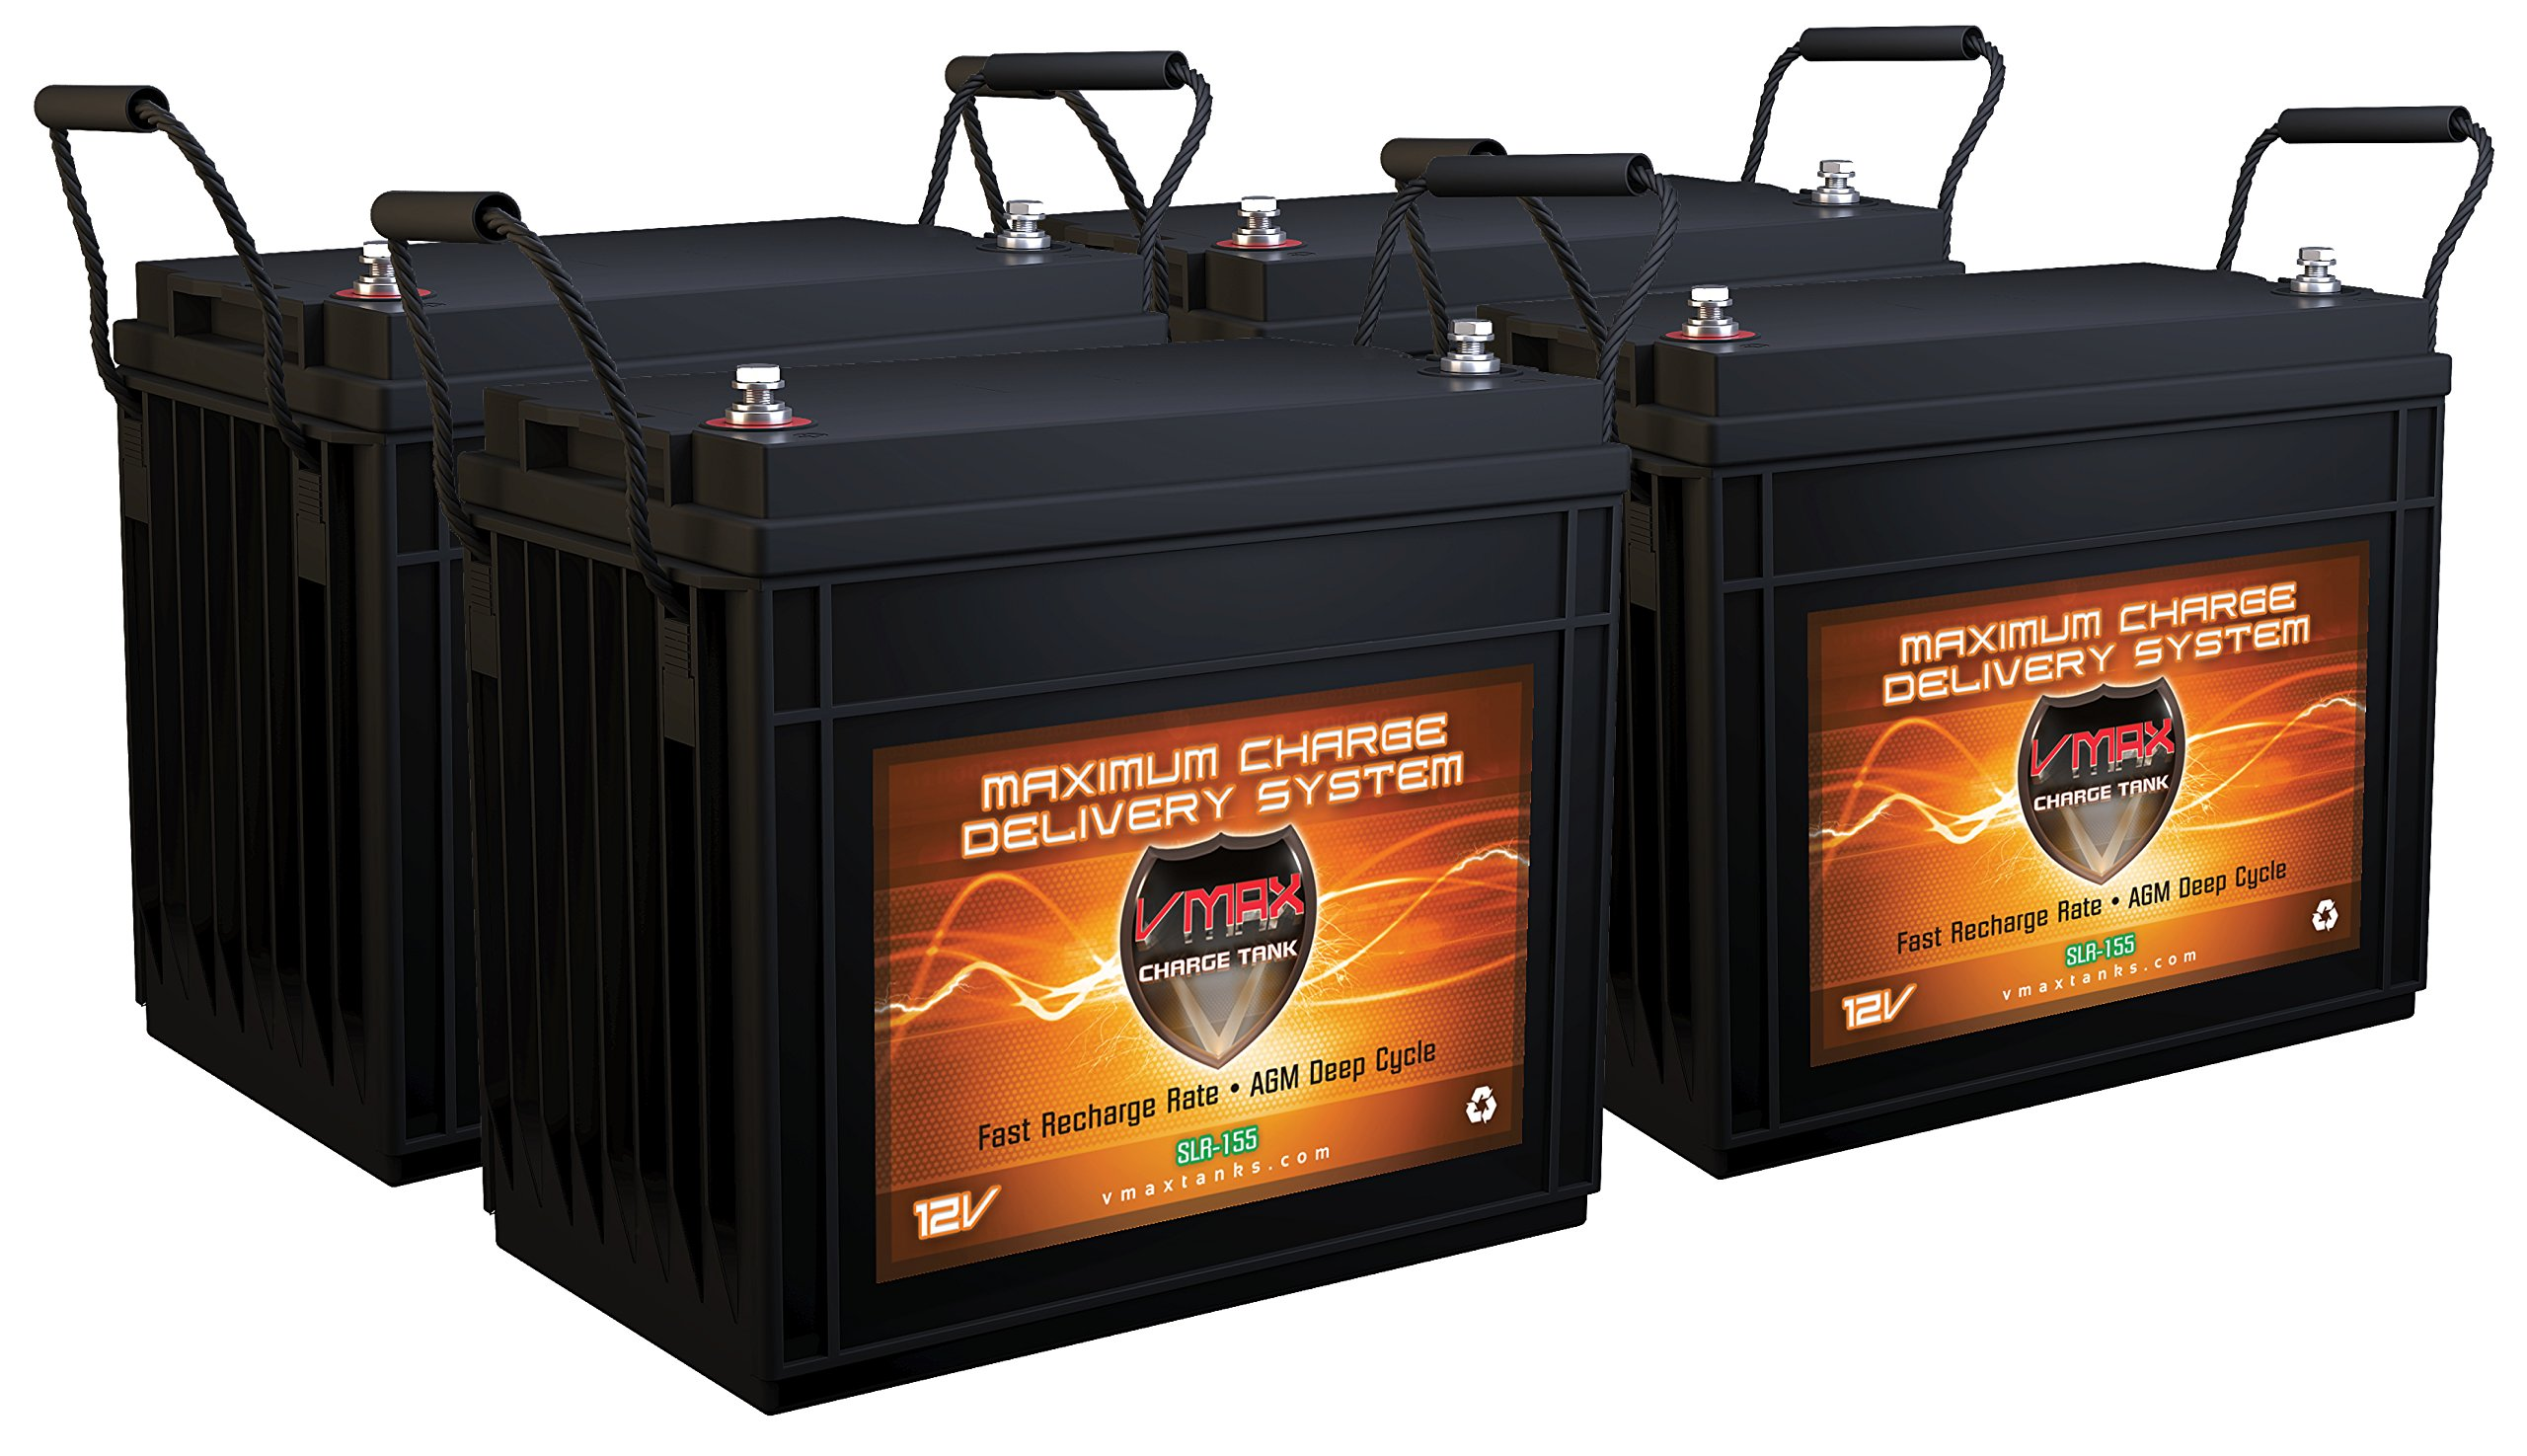 QTY 4 VMAX SLR155 Vmaxtanks AGM Deep Cycle 12V 155ah each Sla Solar and Golf Rechargeable Battery for Use with Pv Solar Panels Smart Chargers Wind Turbine and Inverters by VMAX Solar